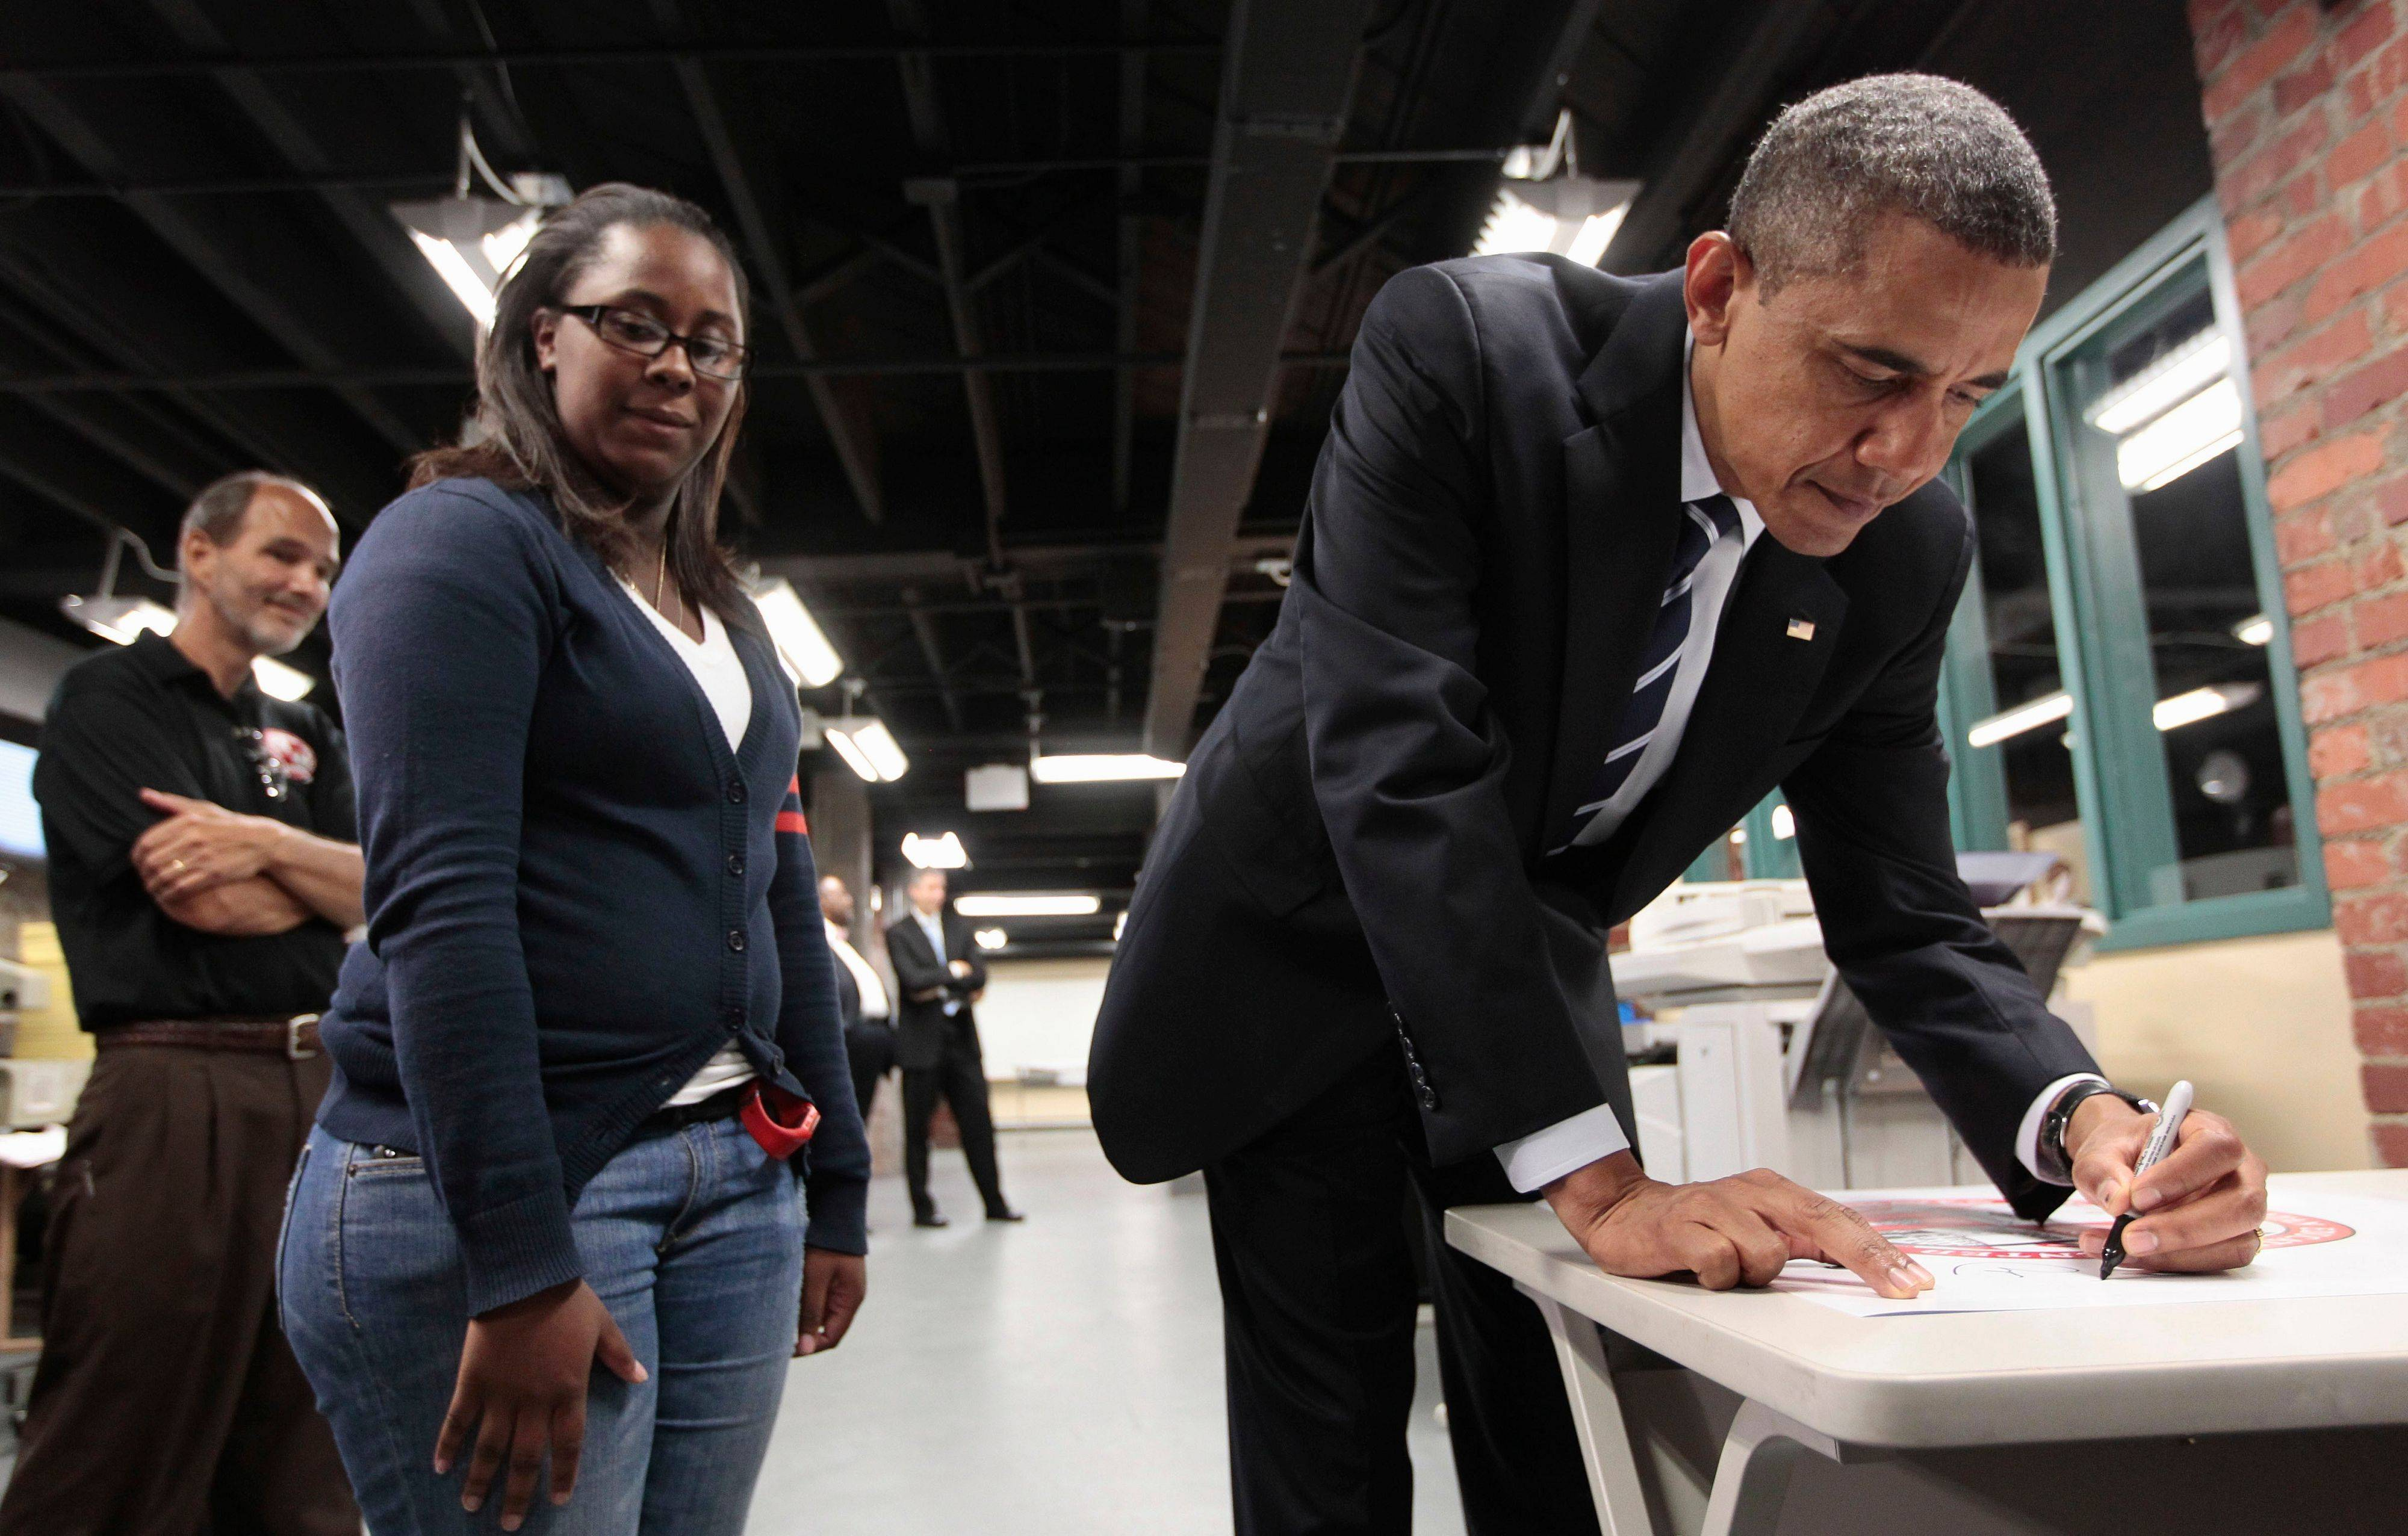 President Barack Obama signs a school poster as he tours classrooms with teacher Keith Morefield, left, Tuesday at Fort Hayes Arts and Academic High School in Coumbus, Ohio.